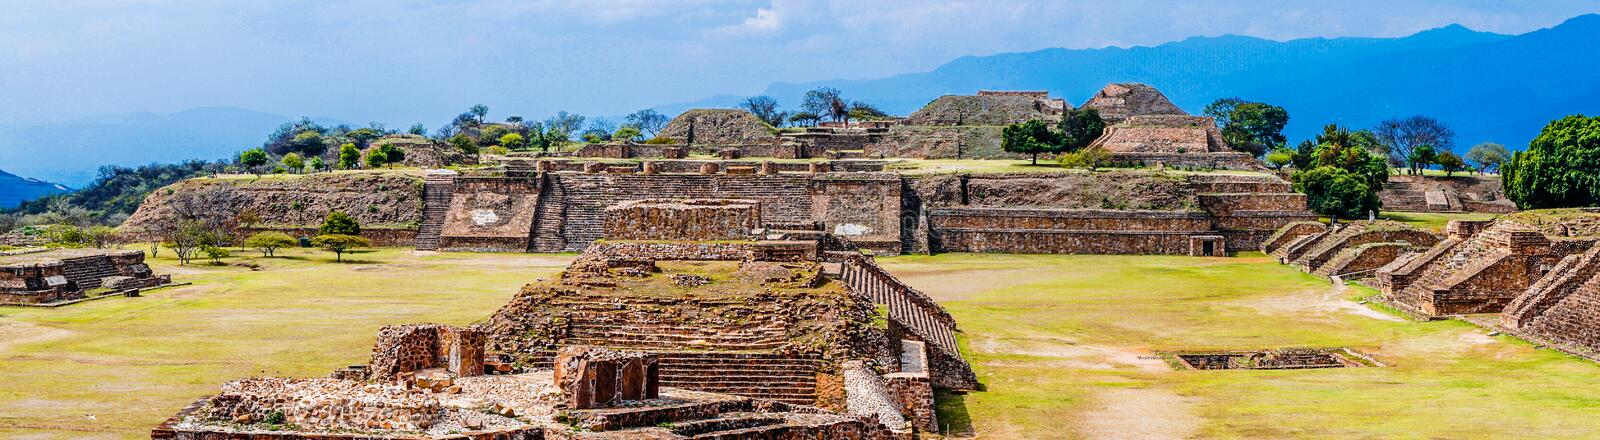 View on Panorama Of Sacred Site Monte Alban In Mexico. Panorama Of Sacred Site Monte Alban In Mexico stock image